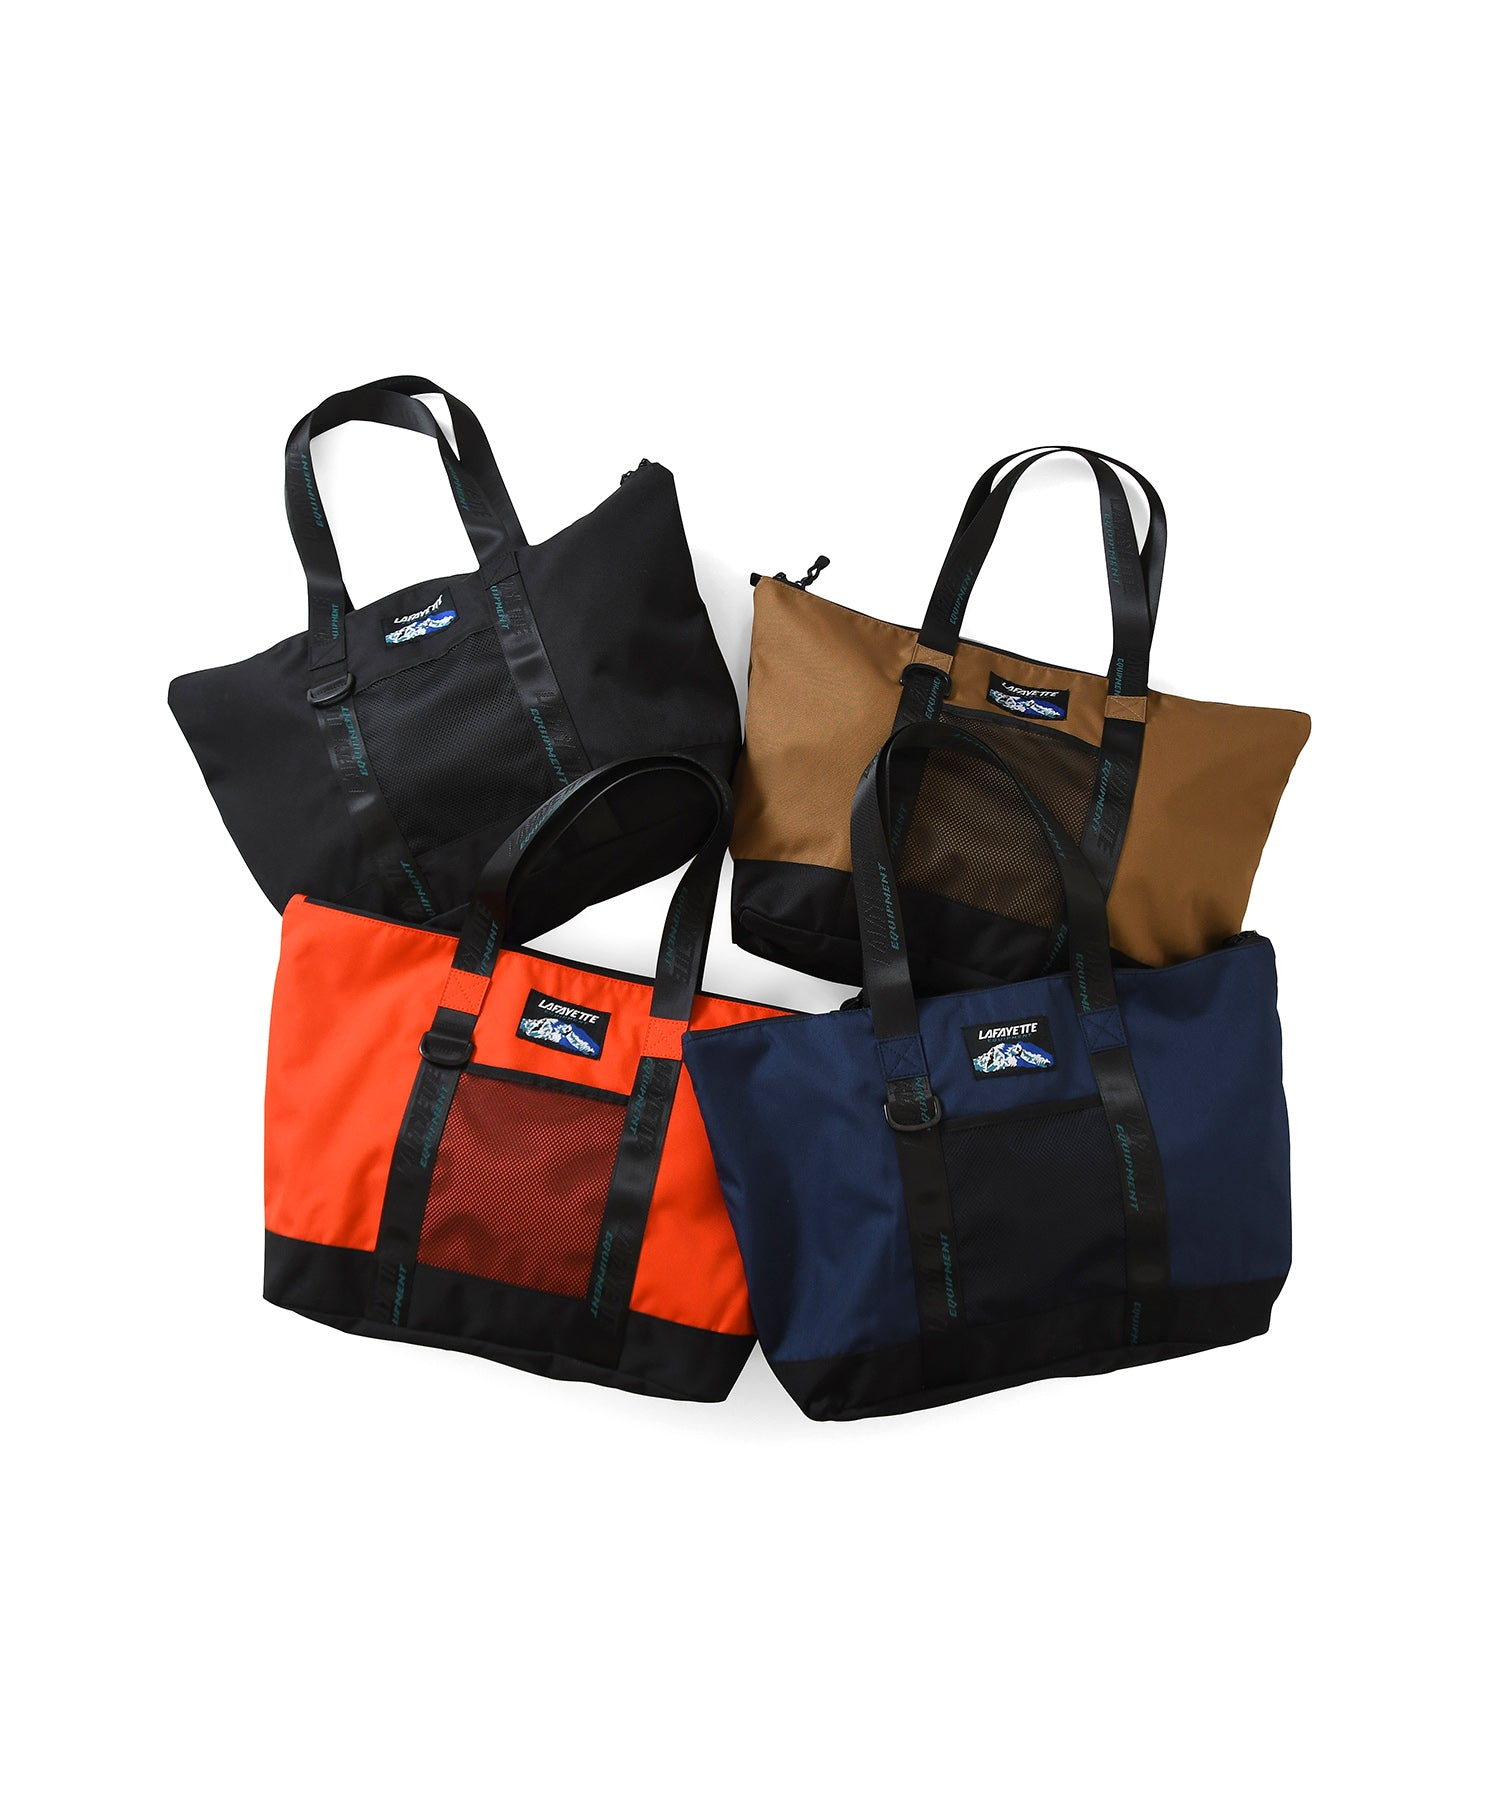 Lafayette EQUIPMENT LOGO NYLON TOTE BAG LS201503 NAVY